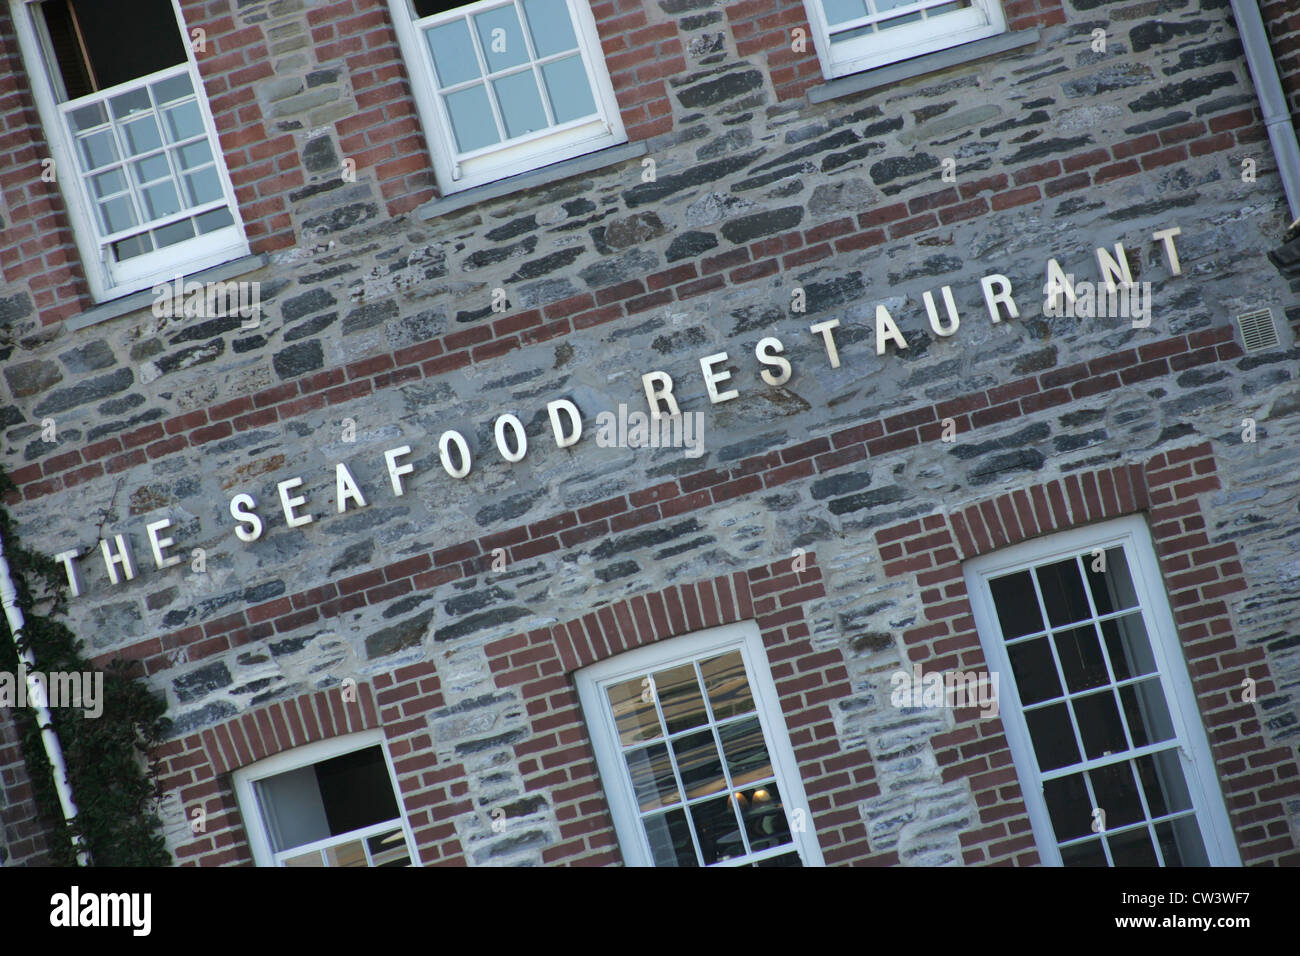 THE SEAFOOD RESTAURANT - RICK STEIN - Stock Image